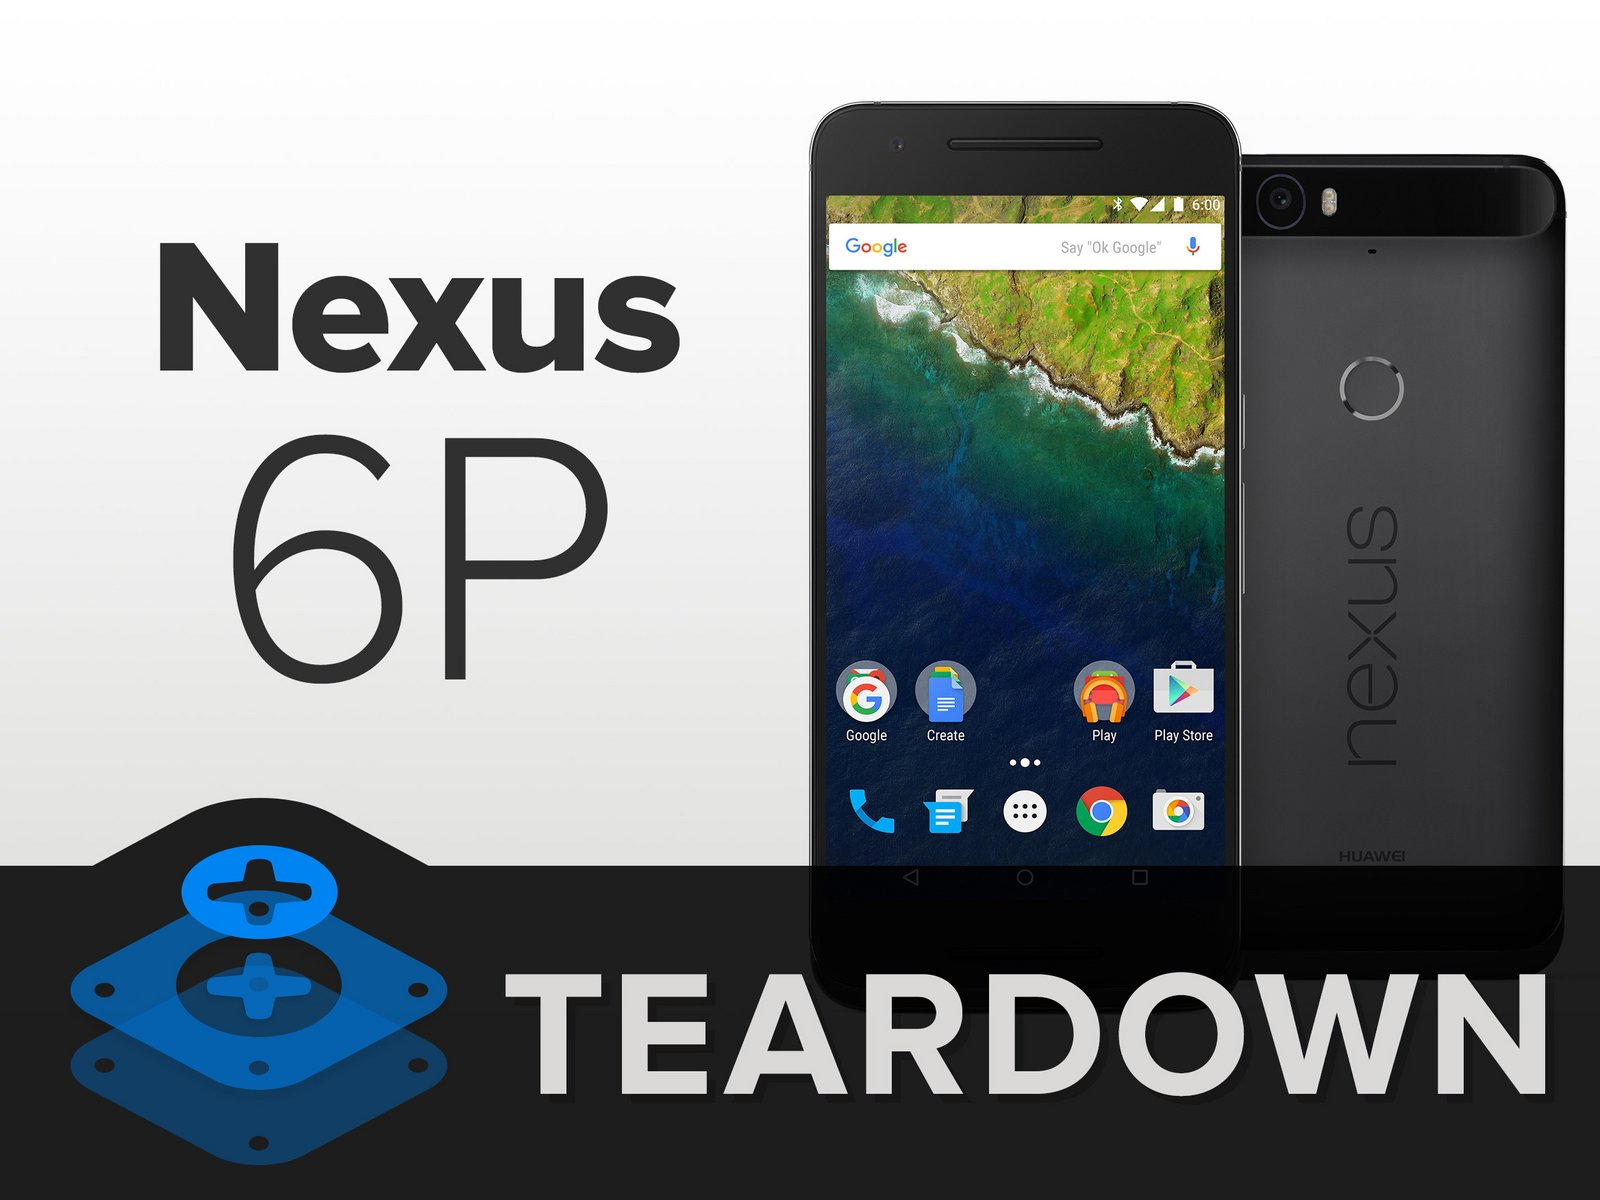 Nexus 6p Teardown Ifixit Line Sim Bb9800 Short Circuit For Repair Gsmforum